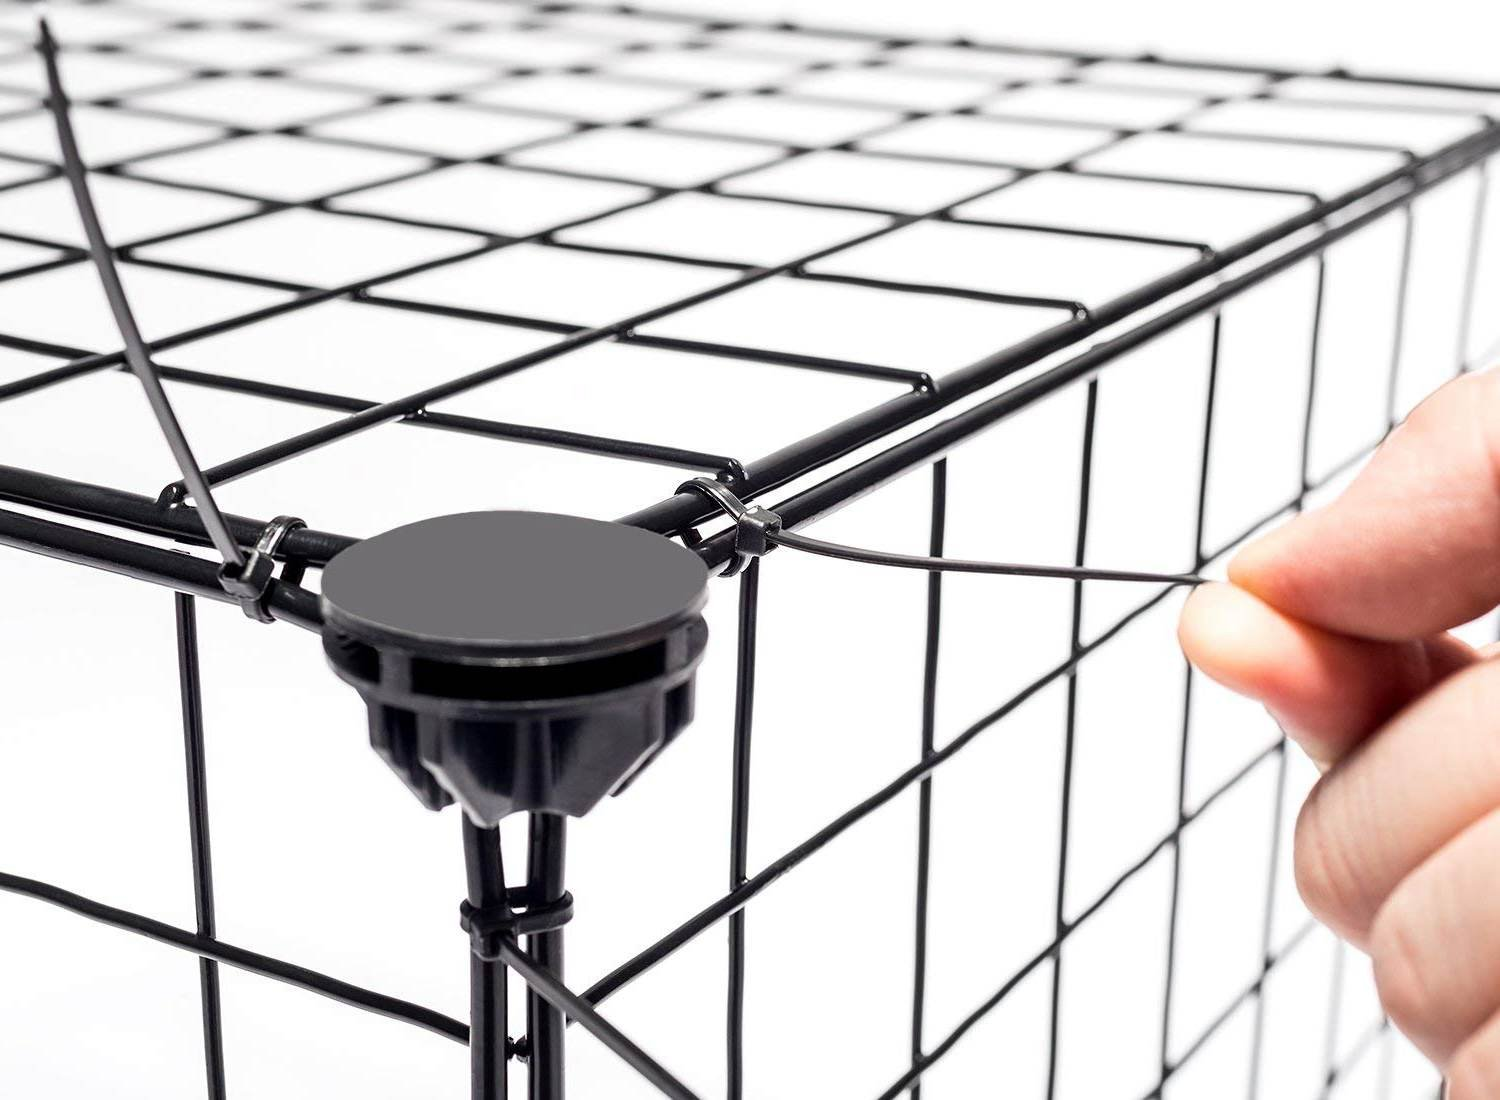 JYYG Small Pet Pen Bunny Cage Dogs Playpen Indoor Out Door Animal Fence Puppy Guinea Pigs, Dwarf Rabbits PET-F (36 Panels, Black) by JYYG (Image #6)